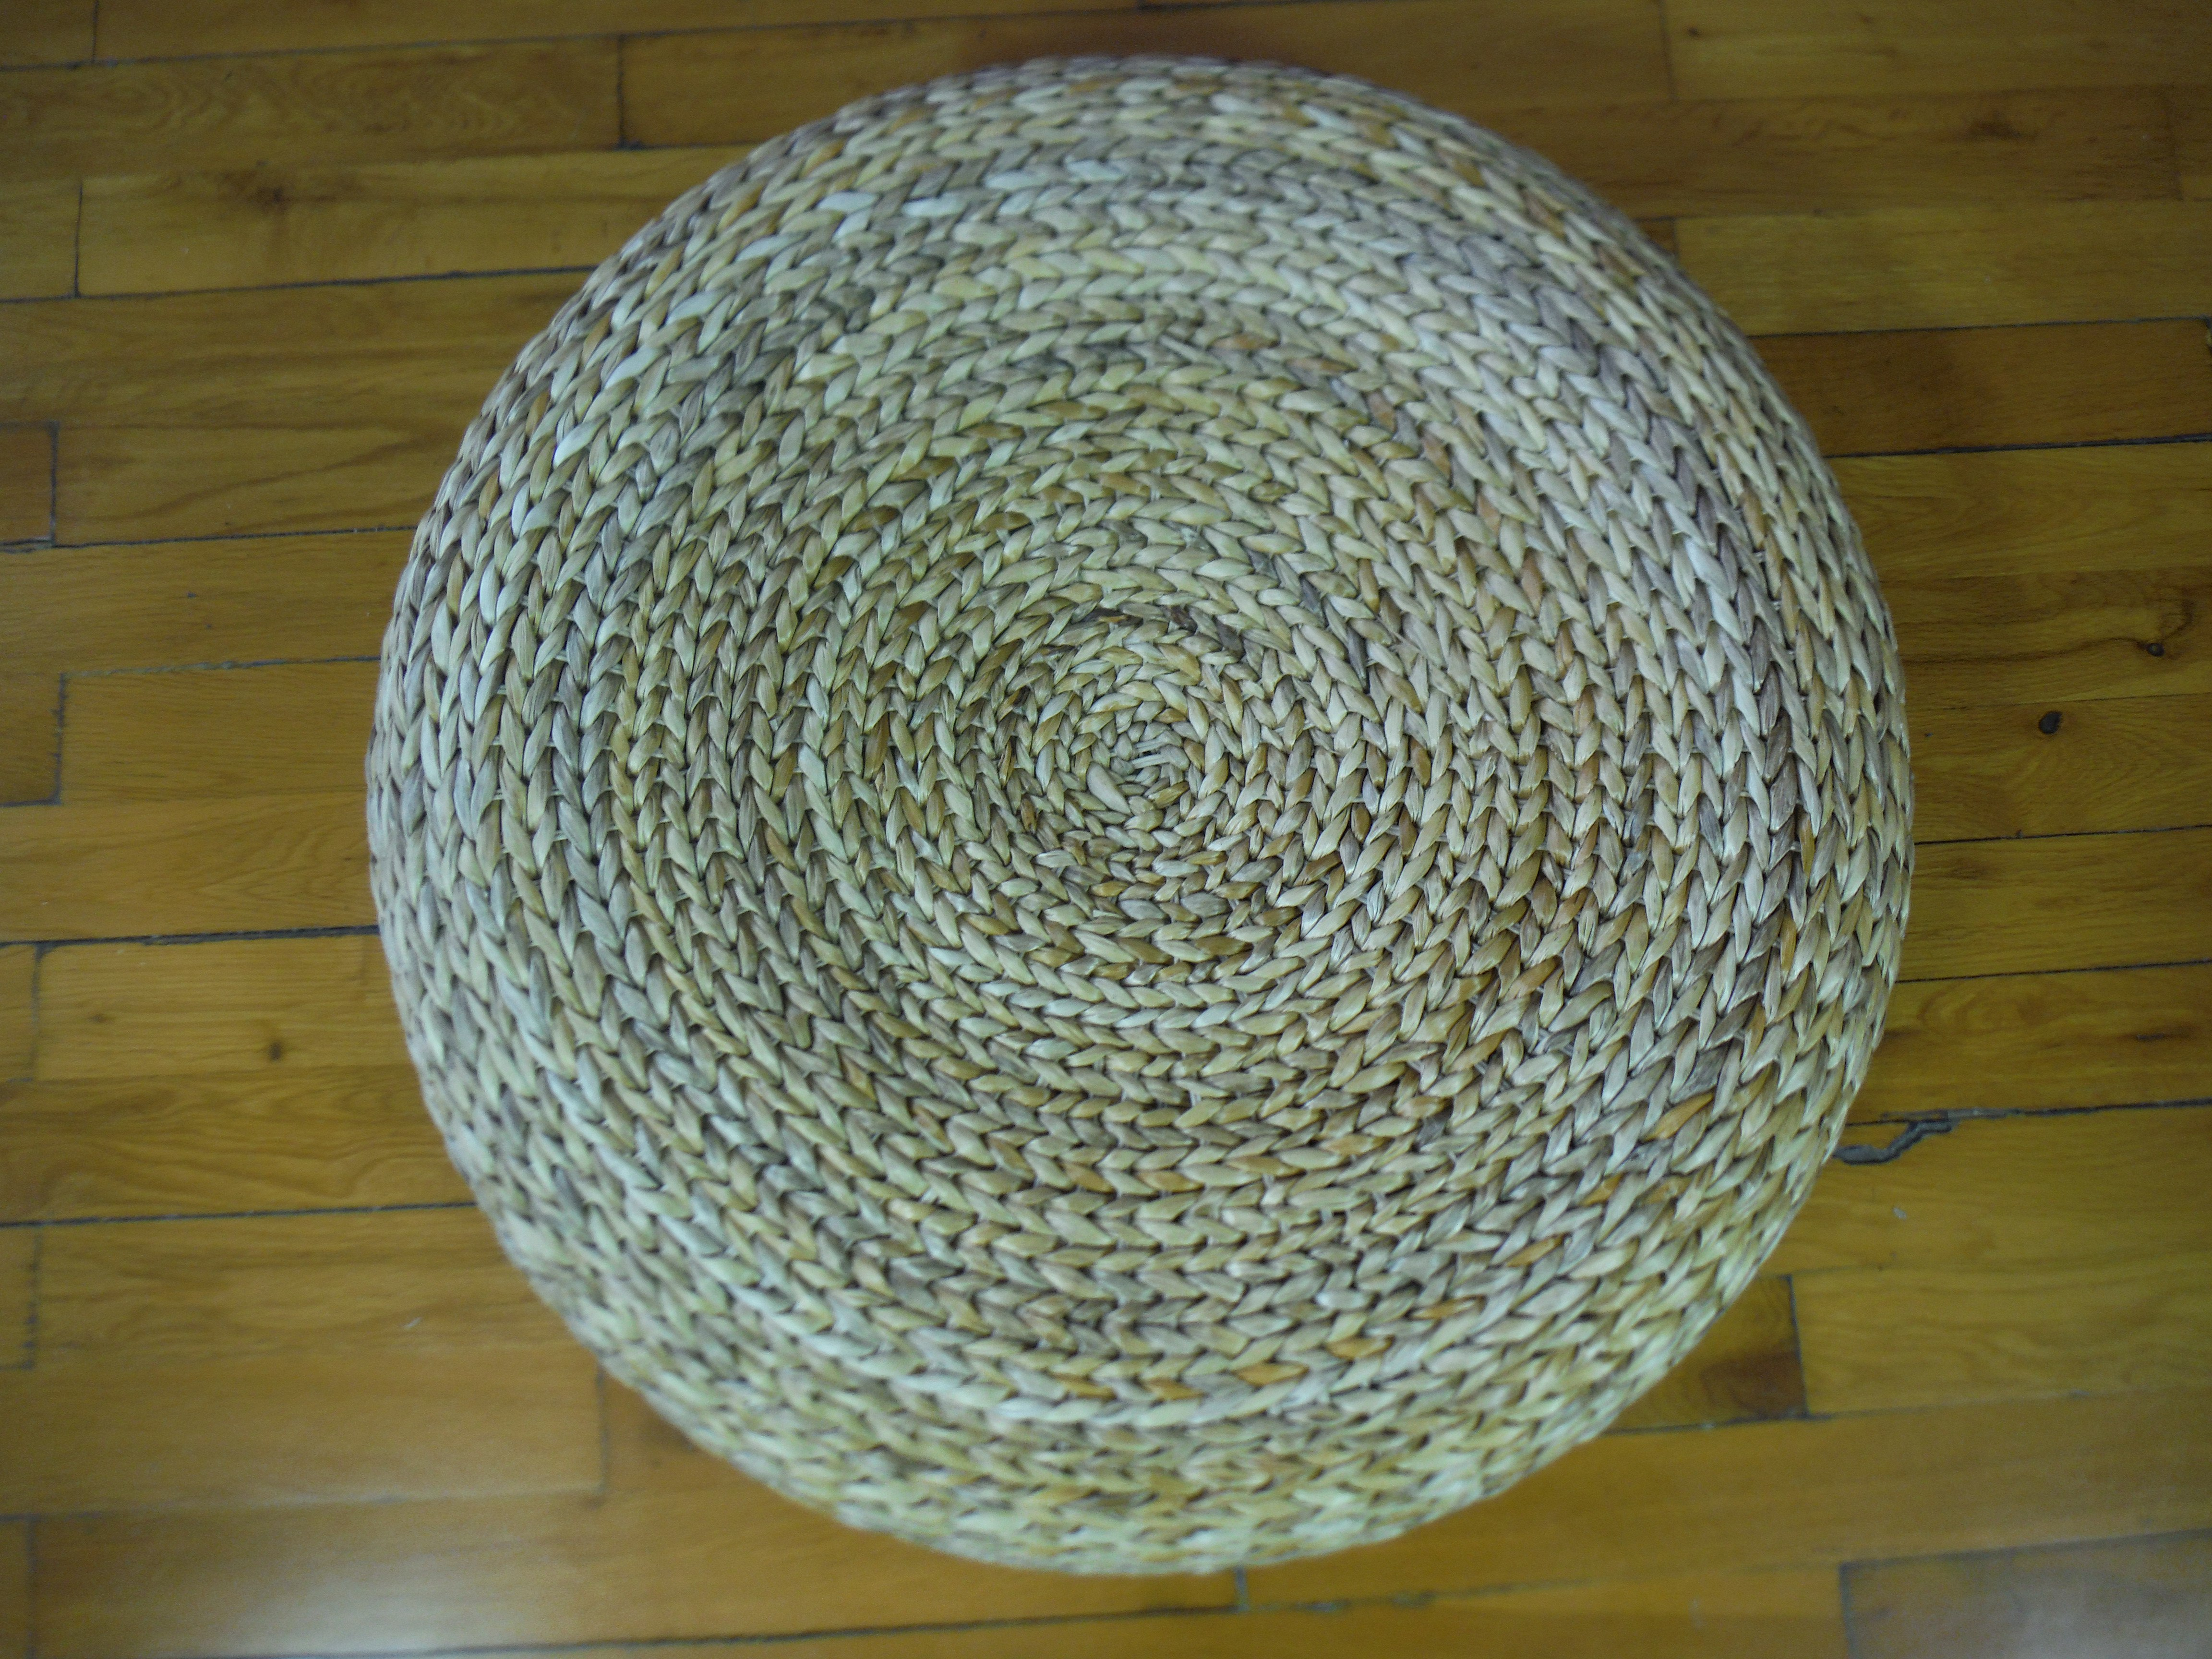 Admirable Round Floor Cushion Straw Pouf Footstool Floor Seating Yoga Gamerscity Chair Design For Home Gamerscityorg